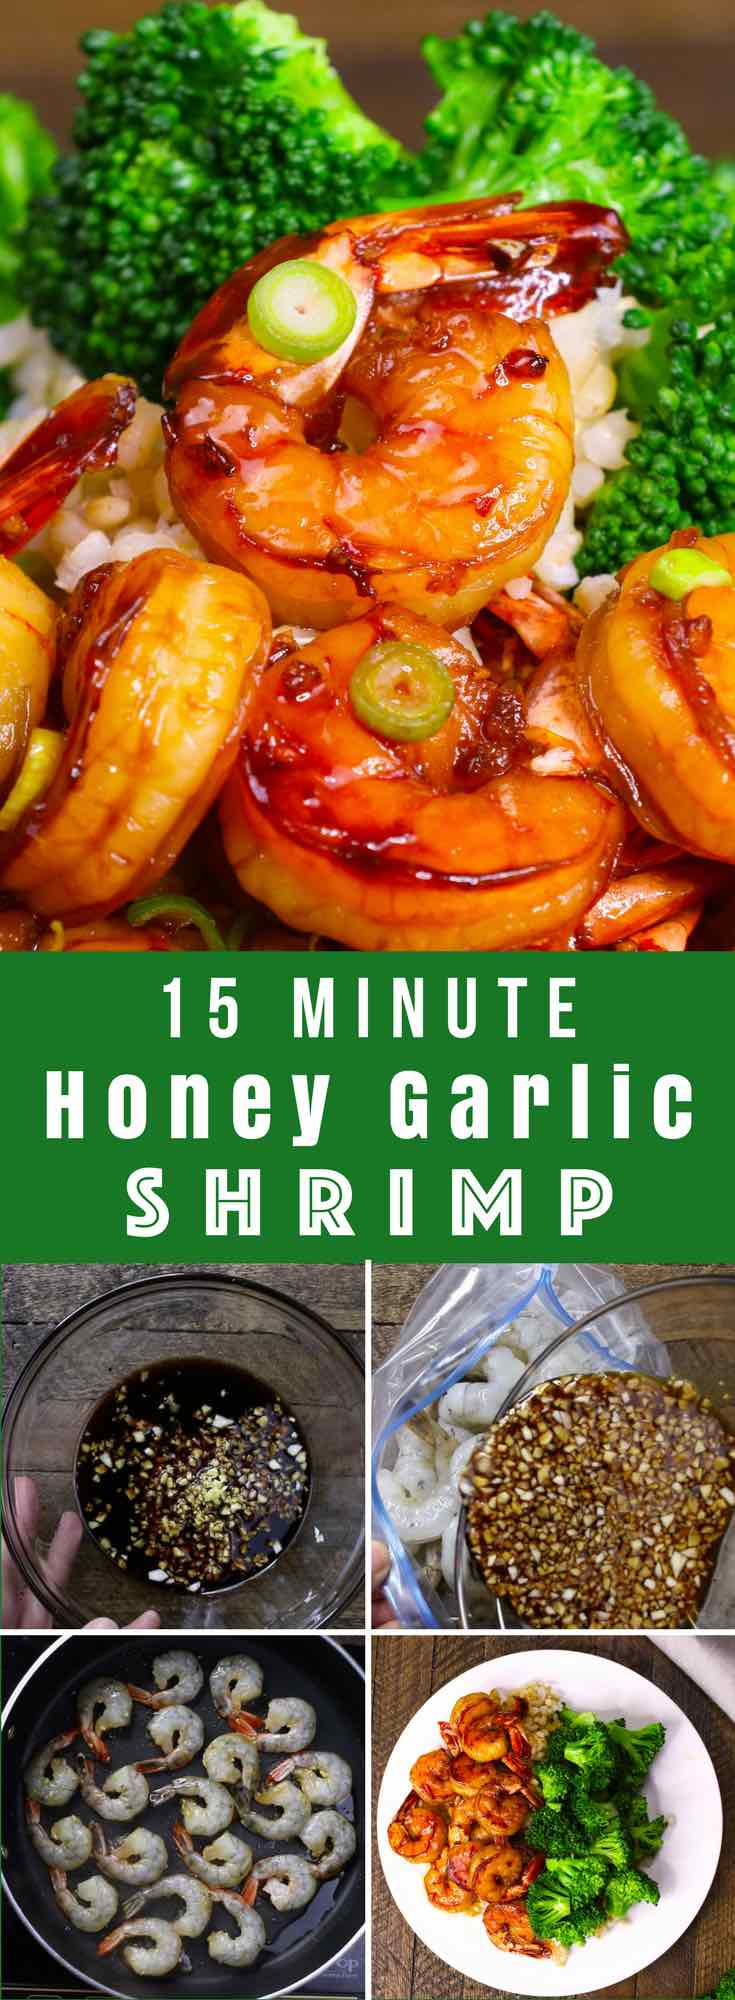 The easiest, most unbelievably delicious Honey Garlic Shrimp. And it'll be on your dinner table in just 15 minutes. Succulent shrimp marinated in honey, garlic, soy sauce and ginger mix, seared in frying pan. Ready in 15 minutes! Quick and easy dinner recipe. #EasyShrimp #ShrimpRecipe